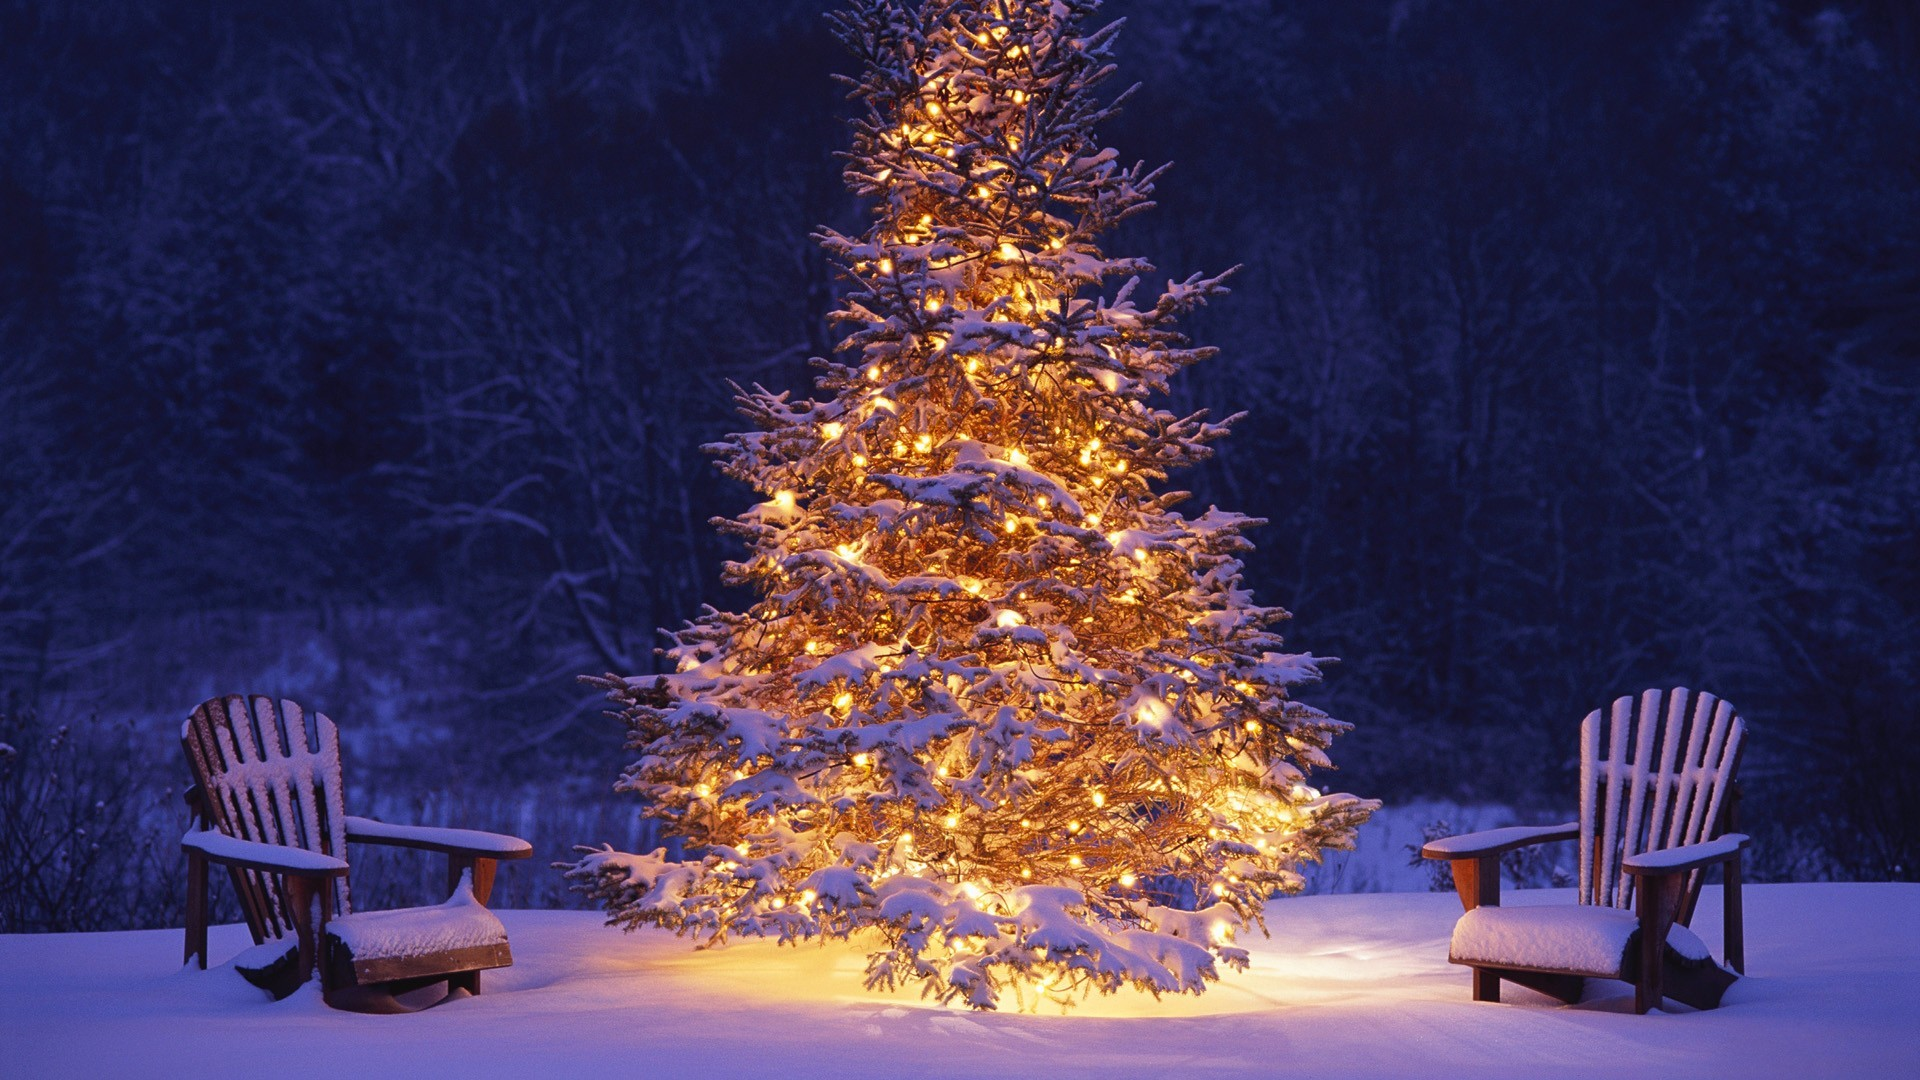 1920x1080 Beautiful Christmas Tree in Winter HD Picture